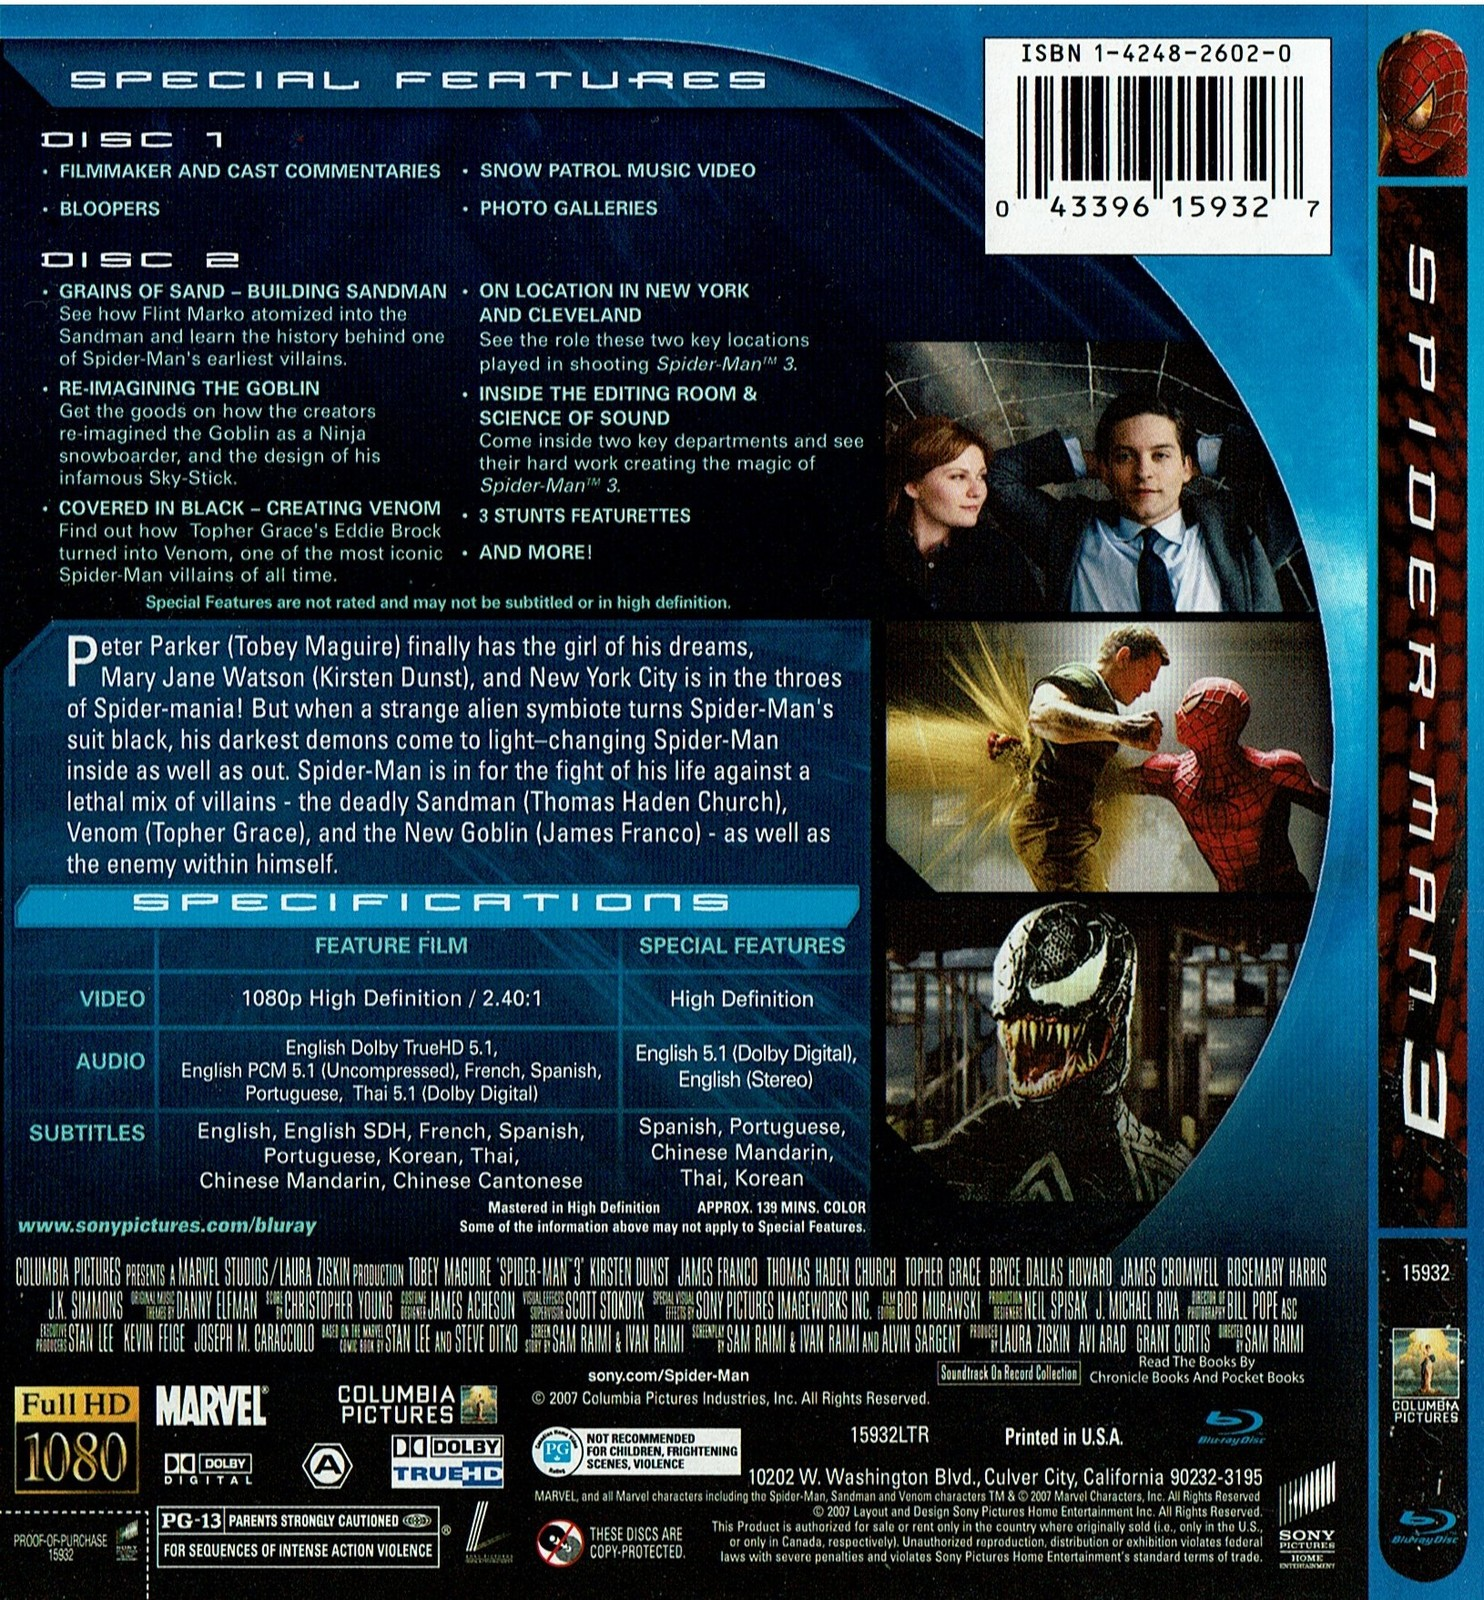 Spider-Man 3 (2007) Blu-ray, 1080p, Special 2 Disc Edition